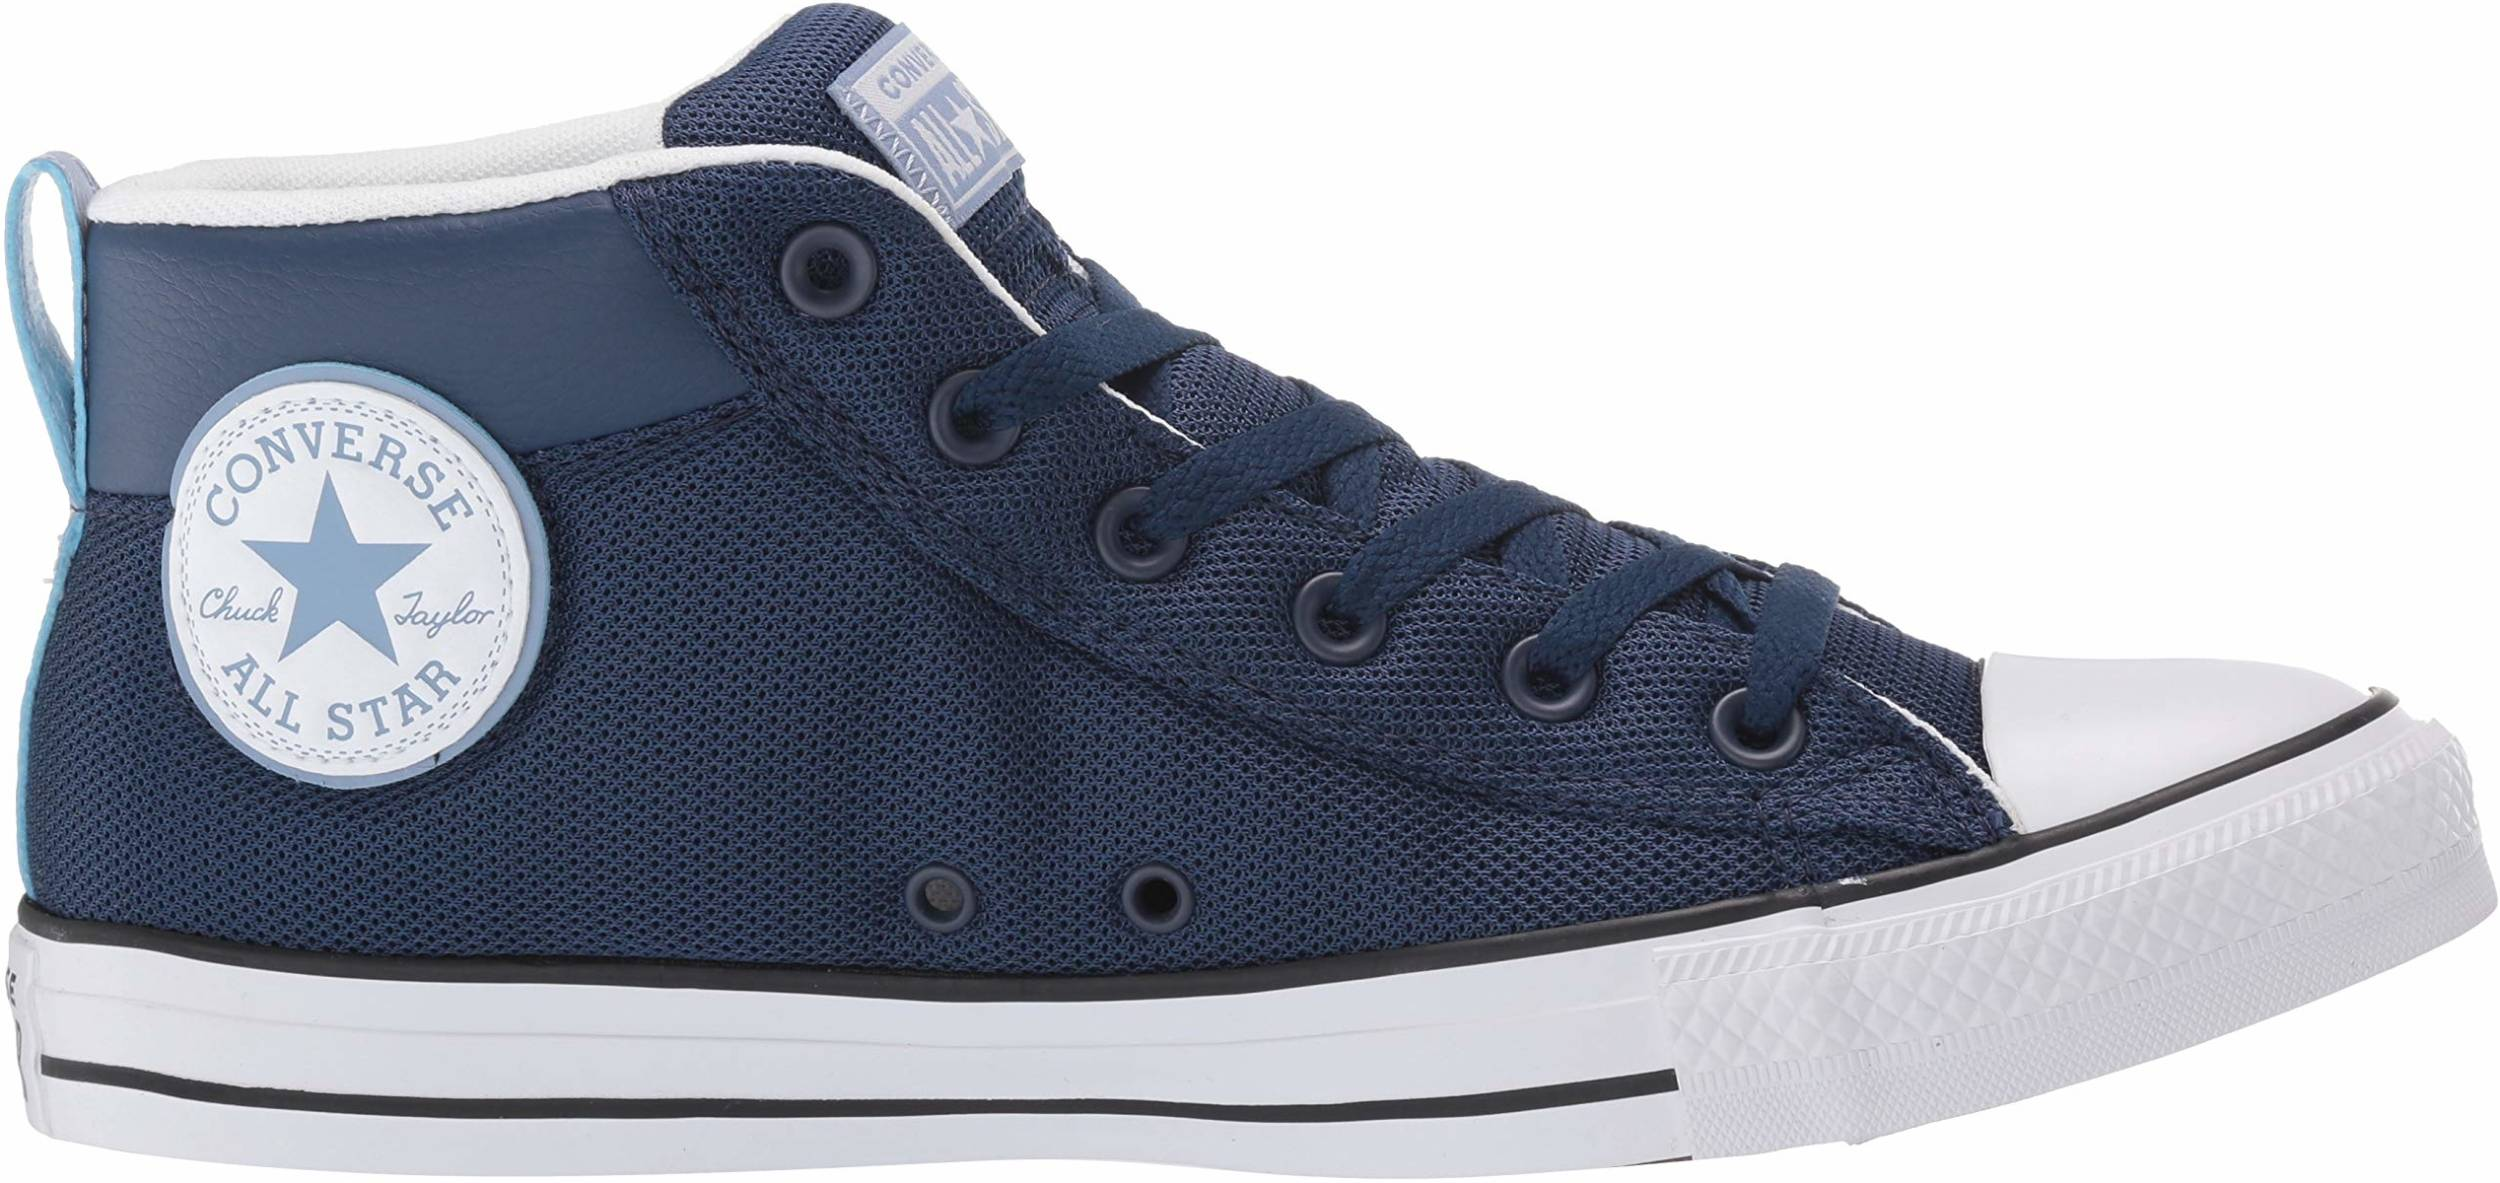 Save 30% on Blue Converse Sneakers (15